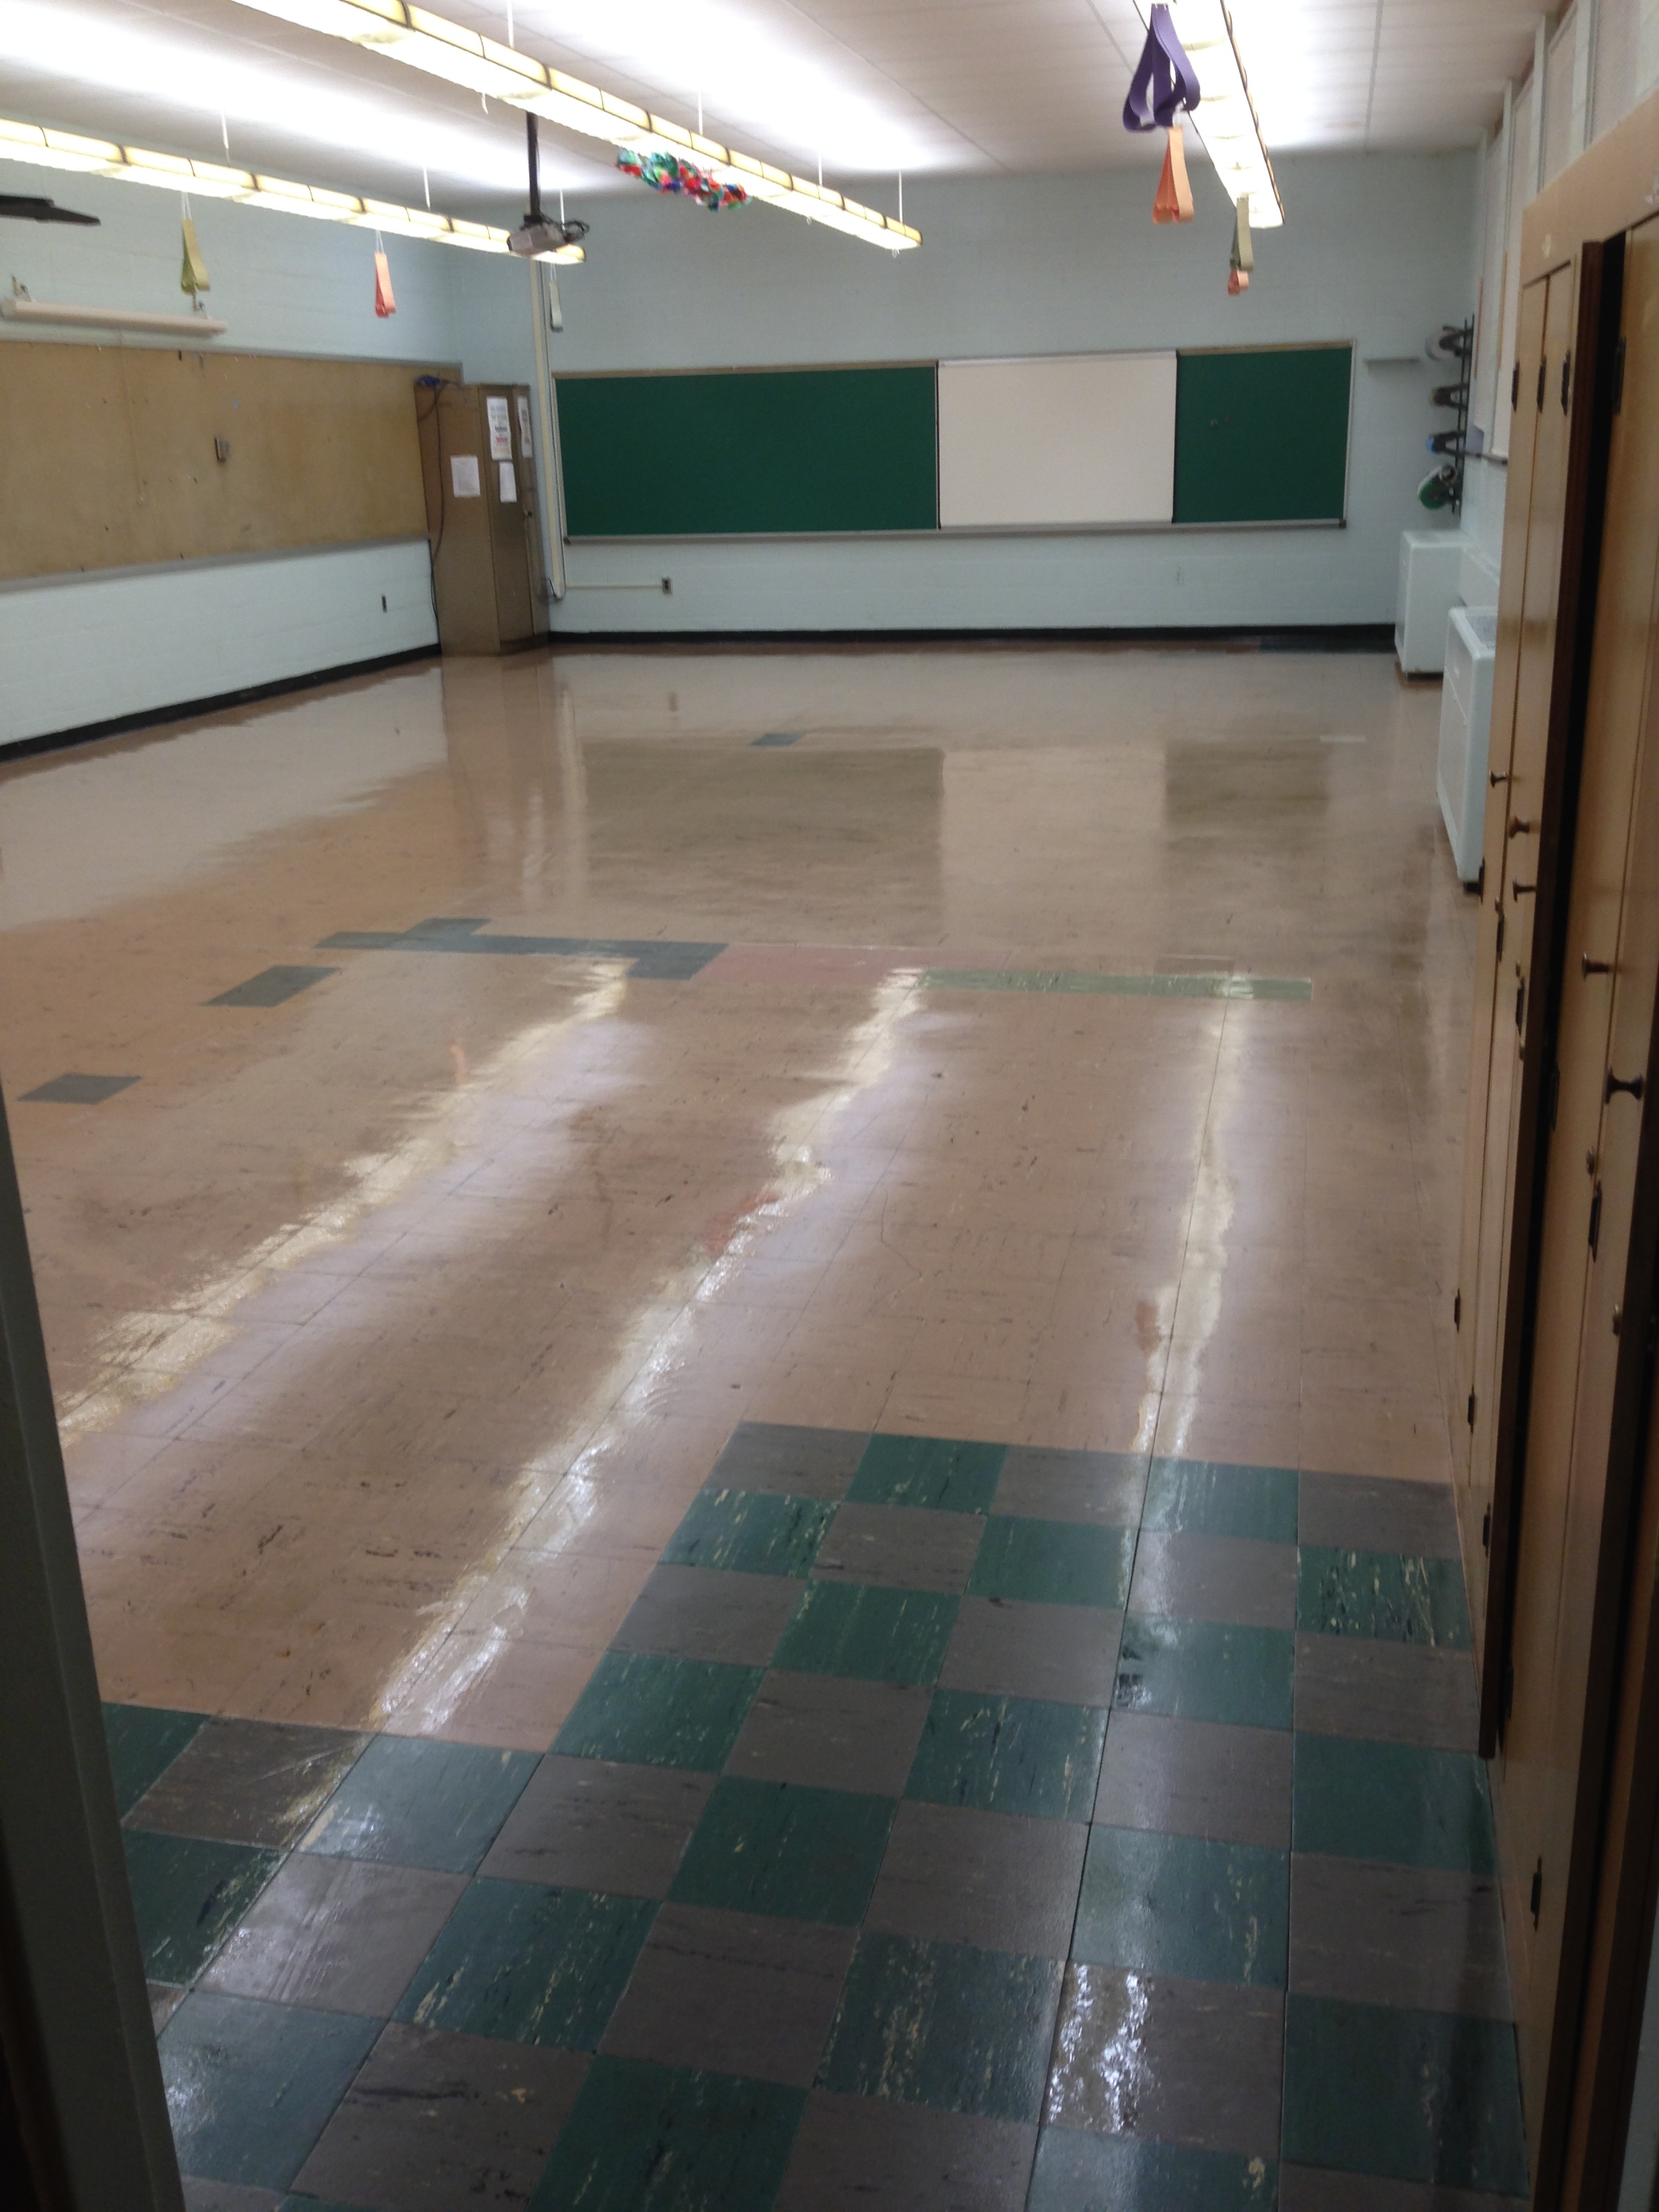 Eastlake middle school maintenance the main problem in these areas included tiles lifting and separating from the floor from years of wear and tear dailygadgetfo Choice Image